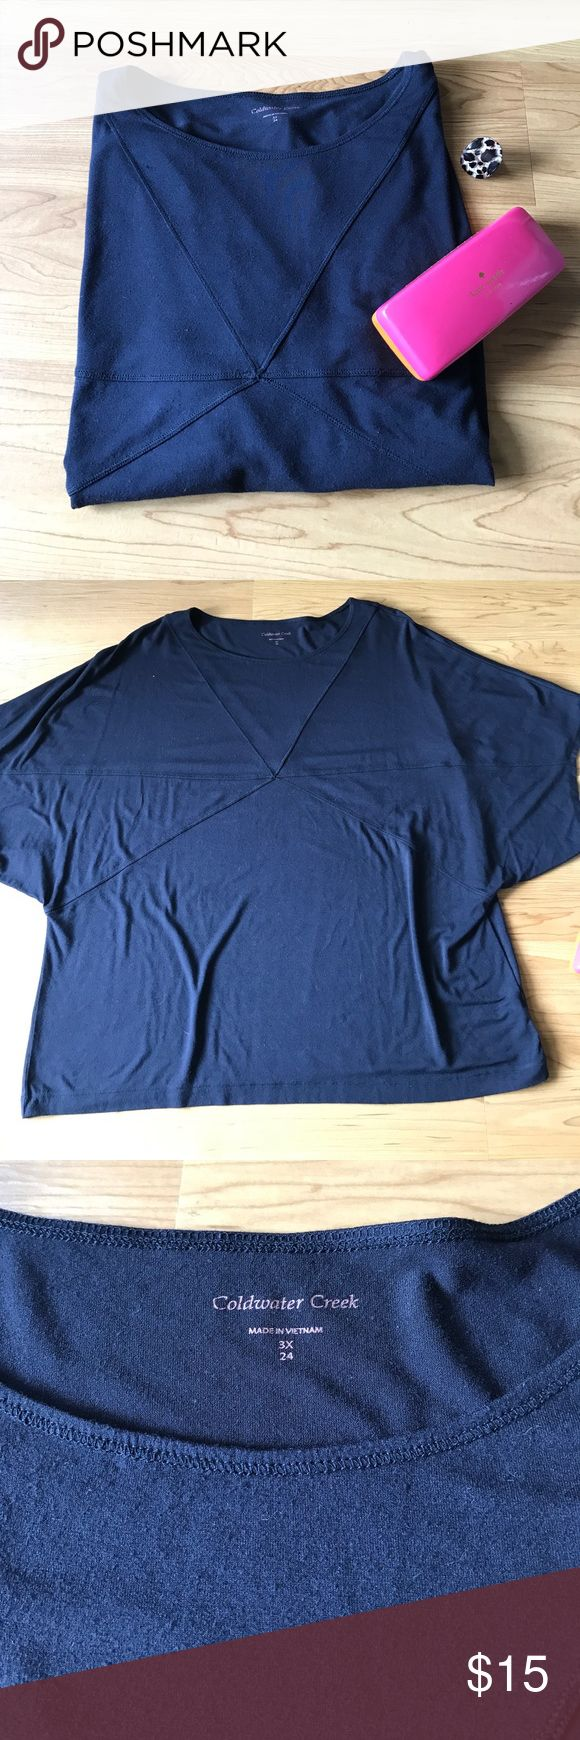 """Coldwater Creek Navy Top sz 3X Batwing Sleeve EUC Coldwater Creek Batwing Top size 3X. Navy Blue Acoop Neck top. Approx 26"""" at Waist & 30"""" long. Materials Rayon & Spandex. Tons of stretch. Very flattering for the summer!! 🦊 10% off 2 or more items in my closet. Bundle & Save with my other listings! 🦊 Coldwater Creek Tops"""